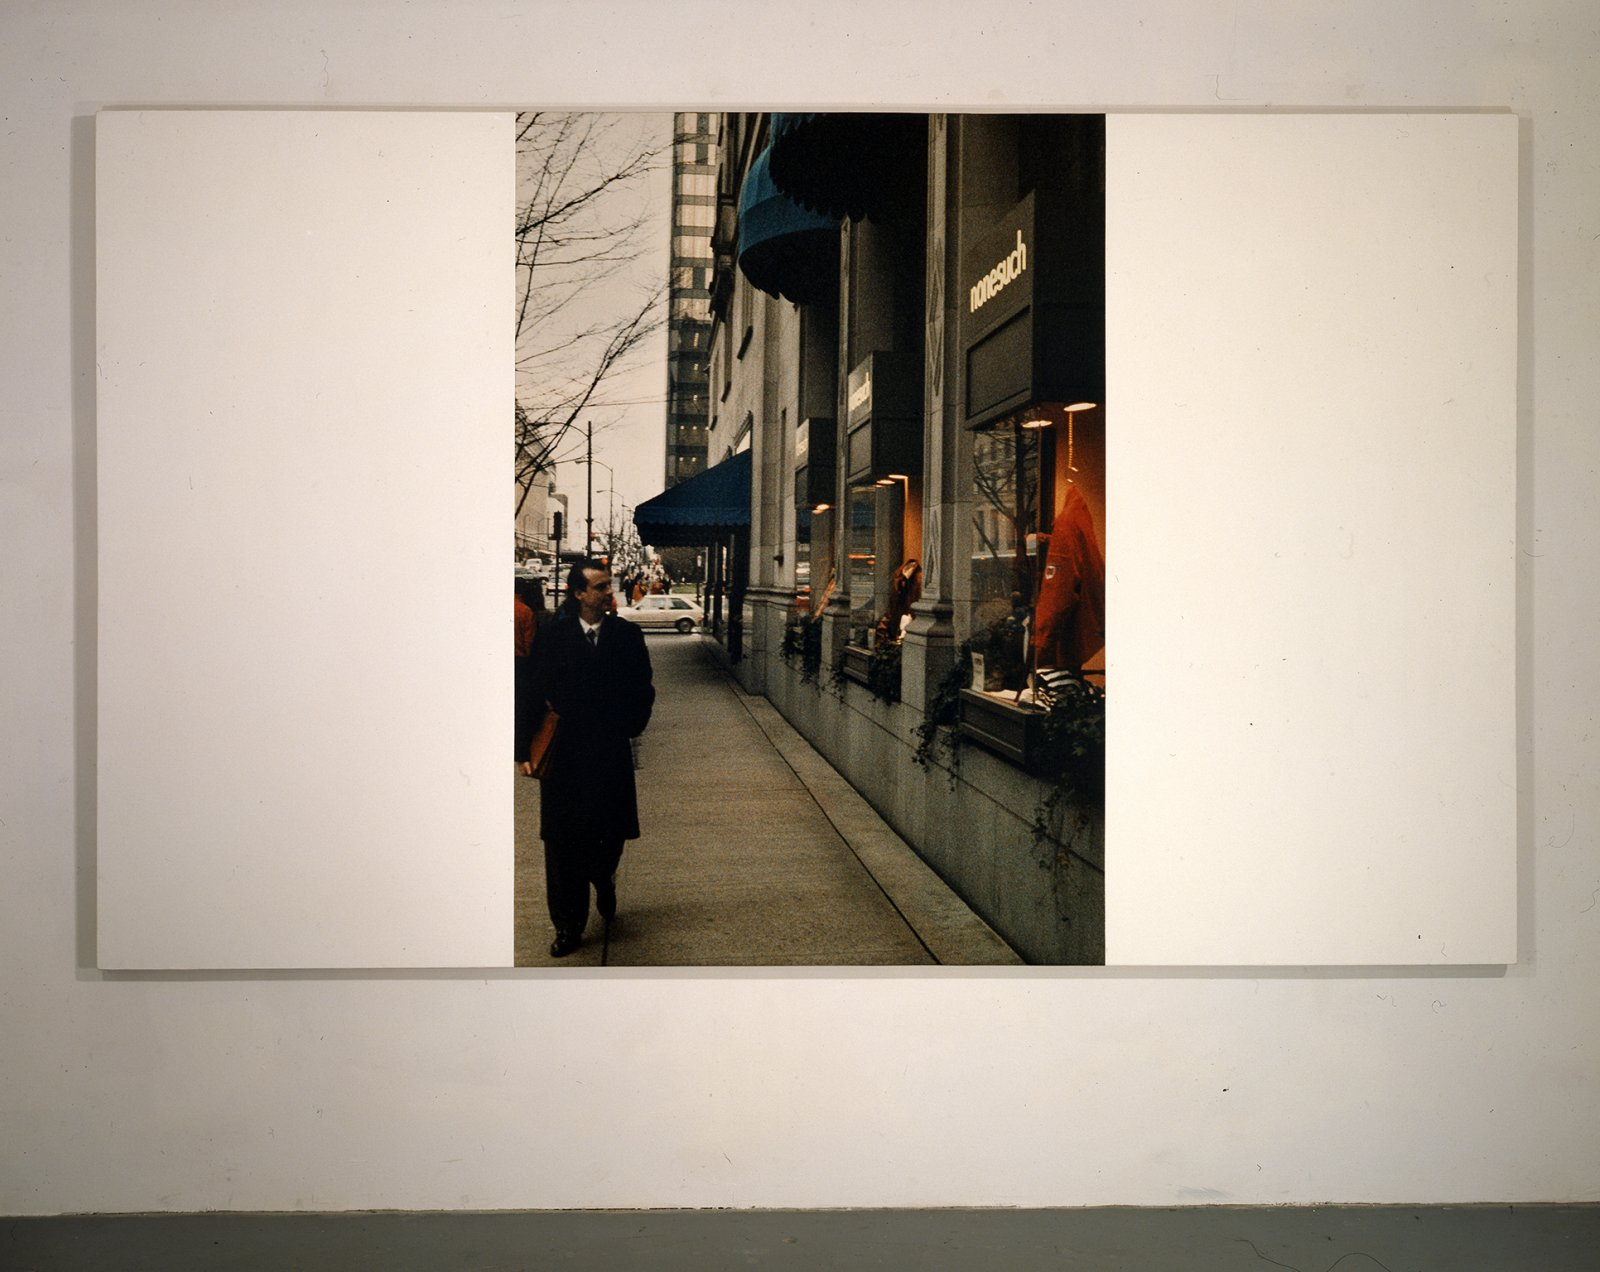 Ian Wallace,My Heroes in the Street VI (Doug), 1987,photolaminate and acrylic on linen,72 x 120 in. (183 x 305 cm)